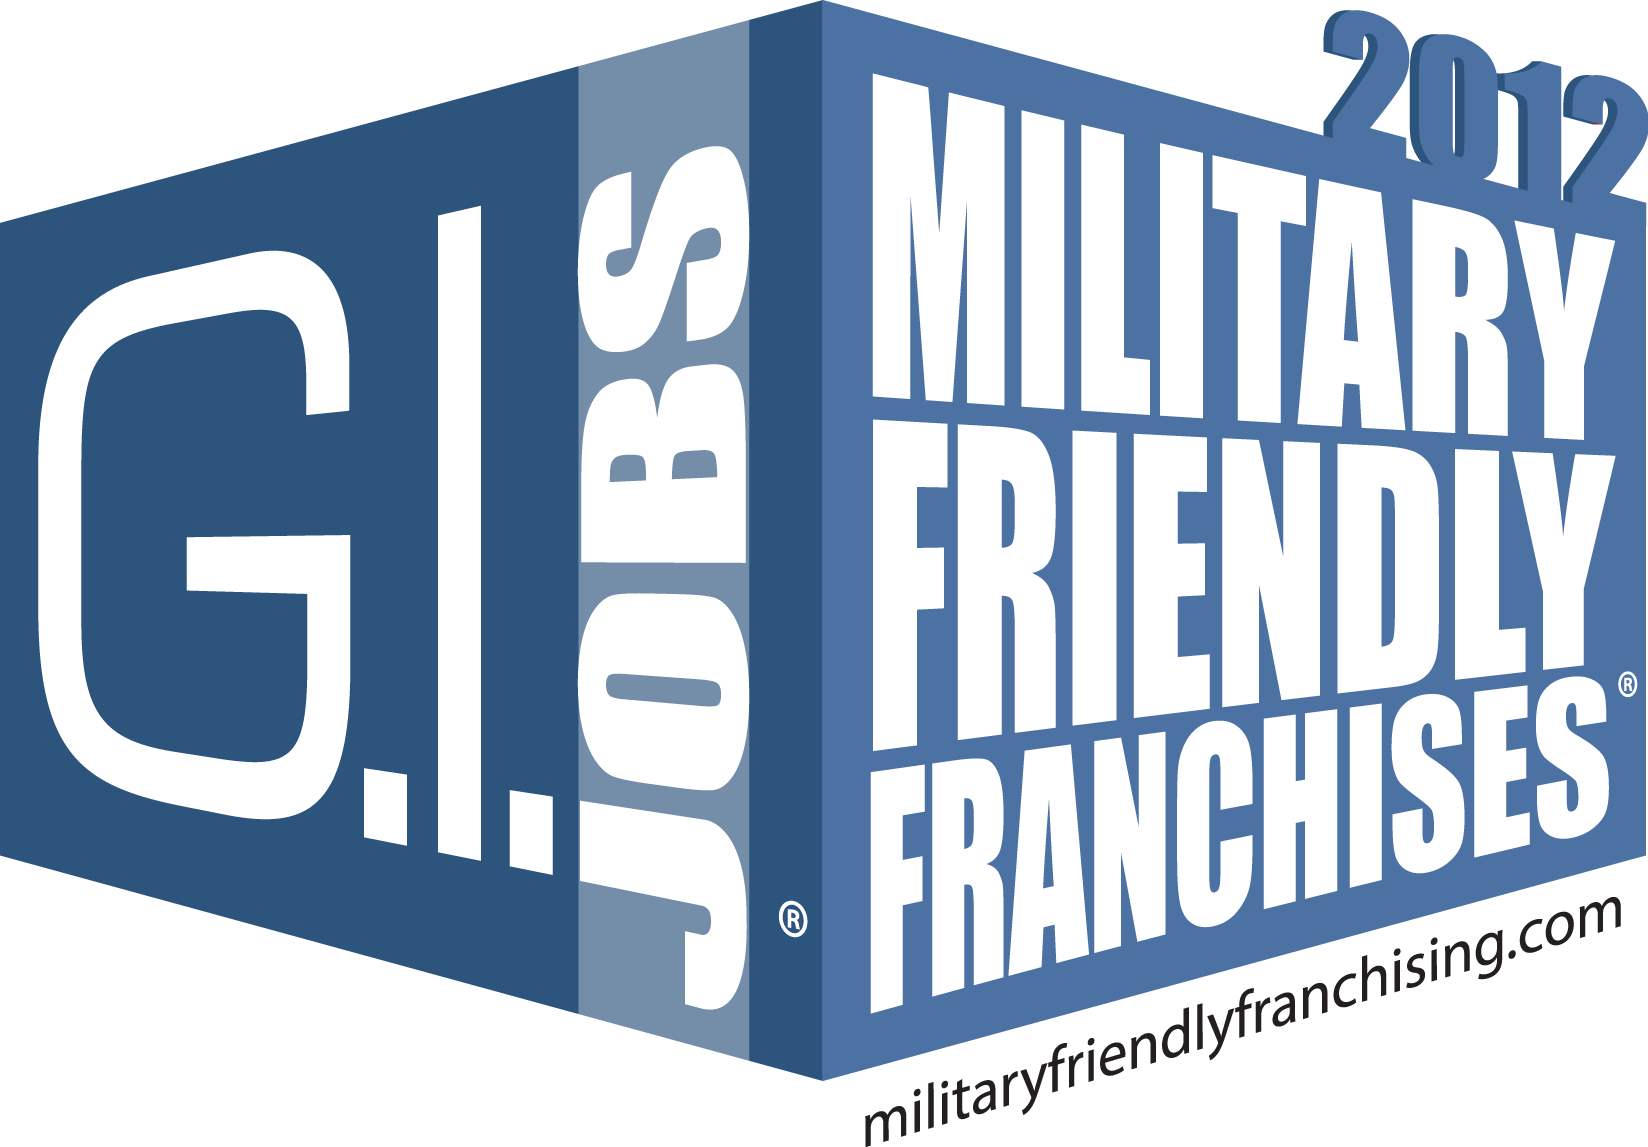 2012 Military-Friendly Franchise list logo